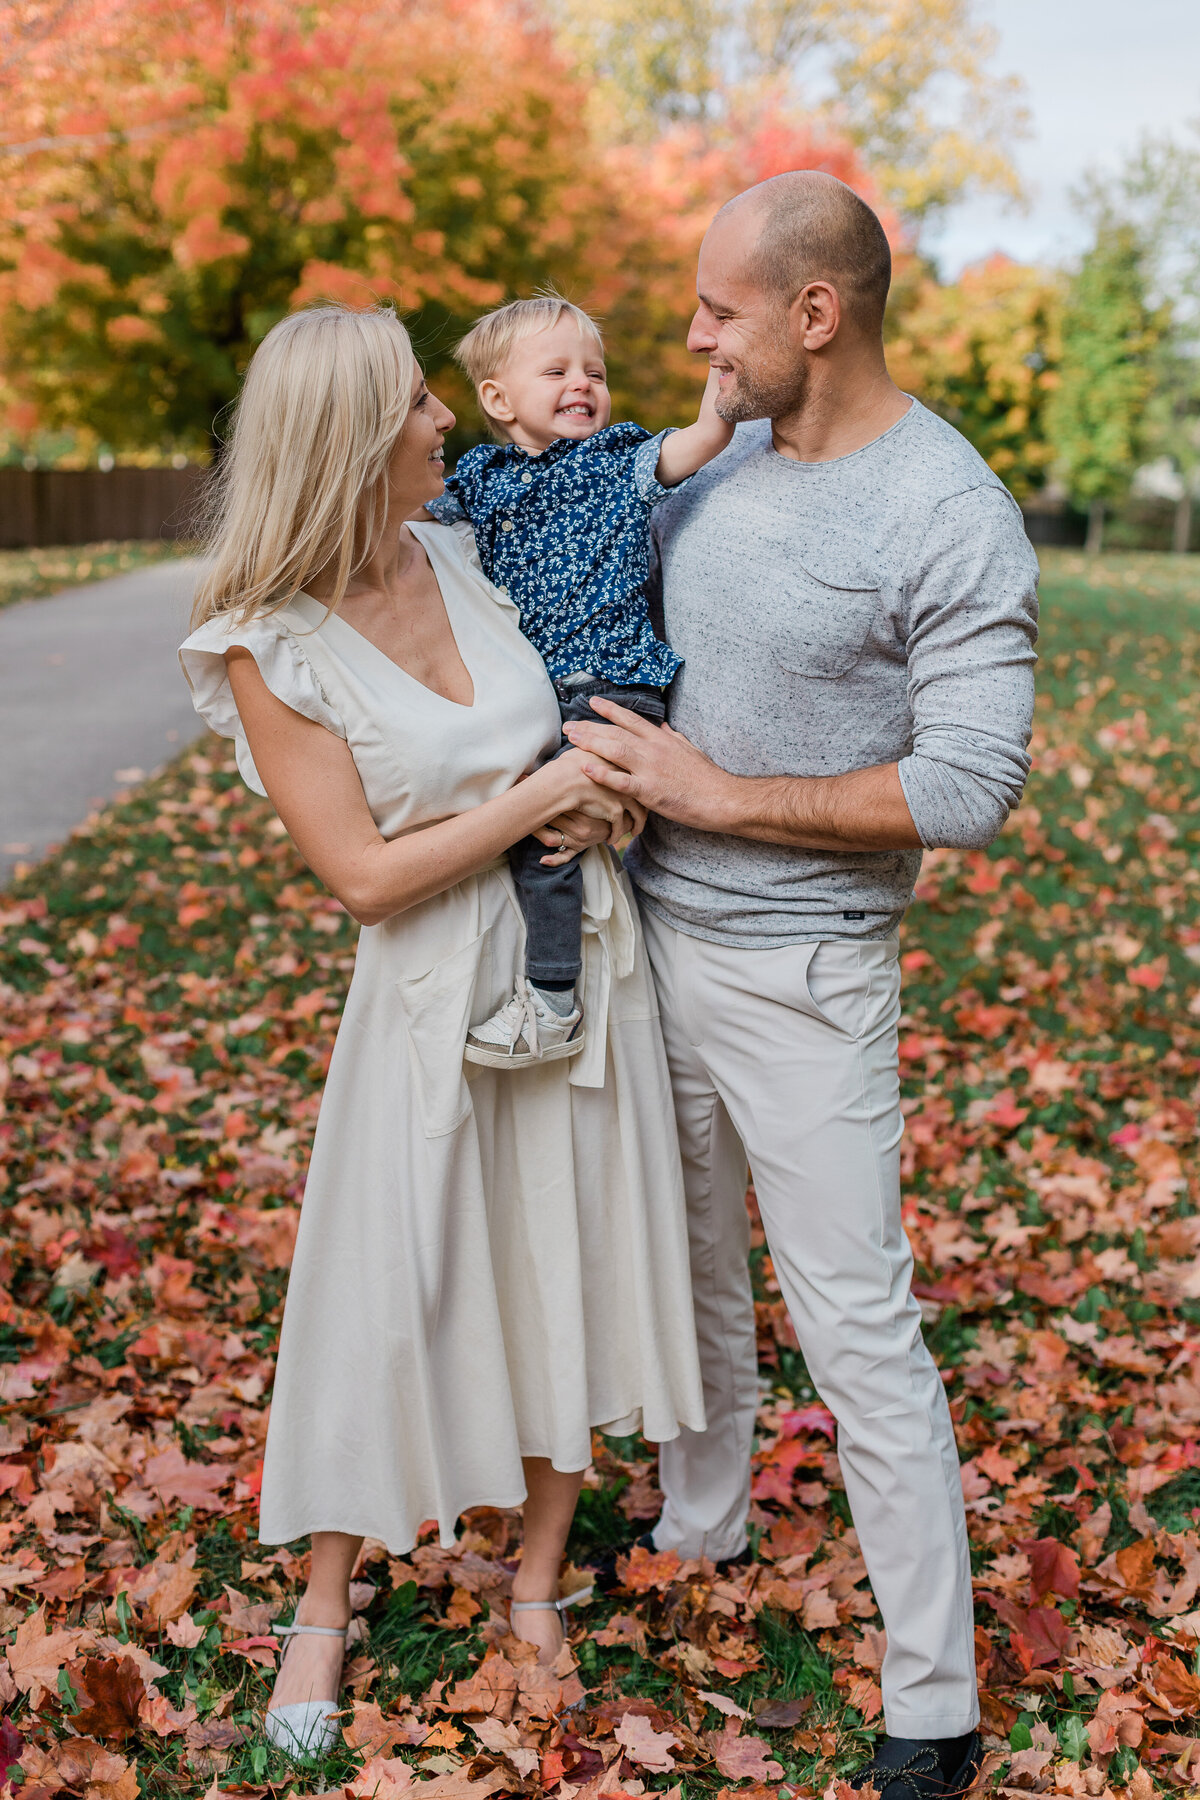 father, mother and son in family photo with fall leaves